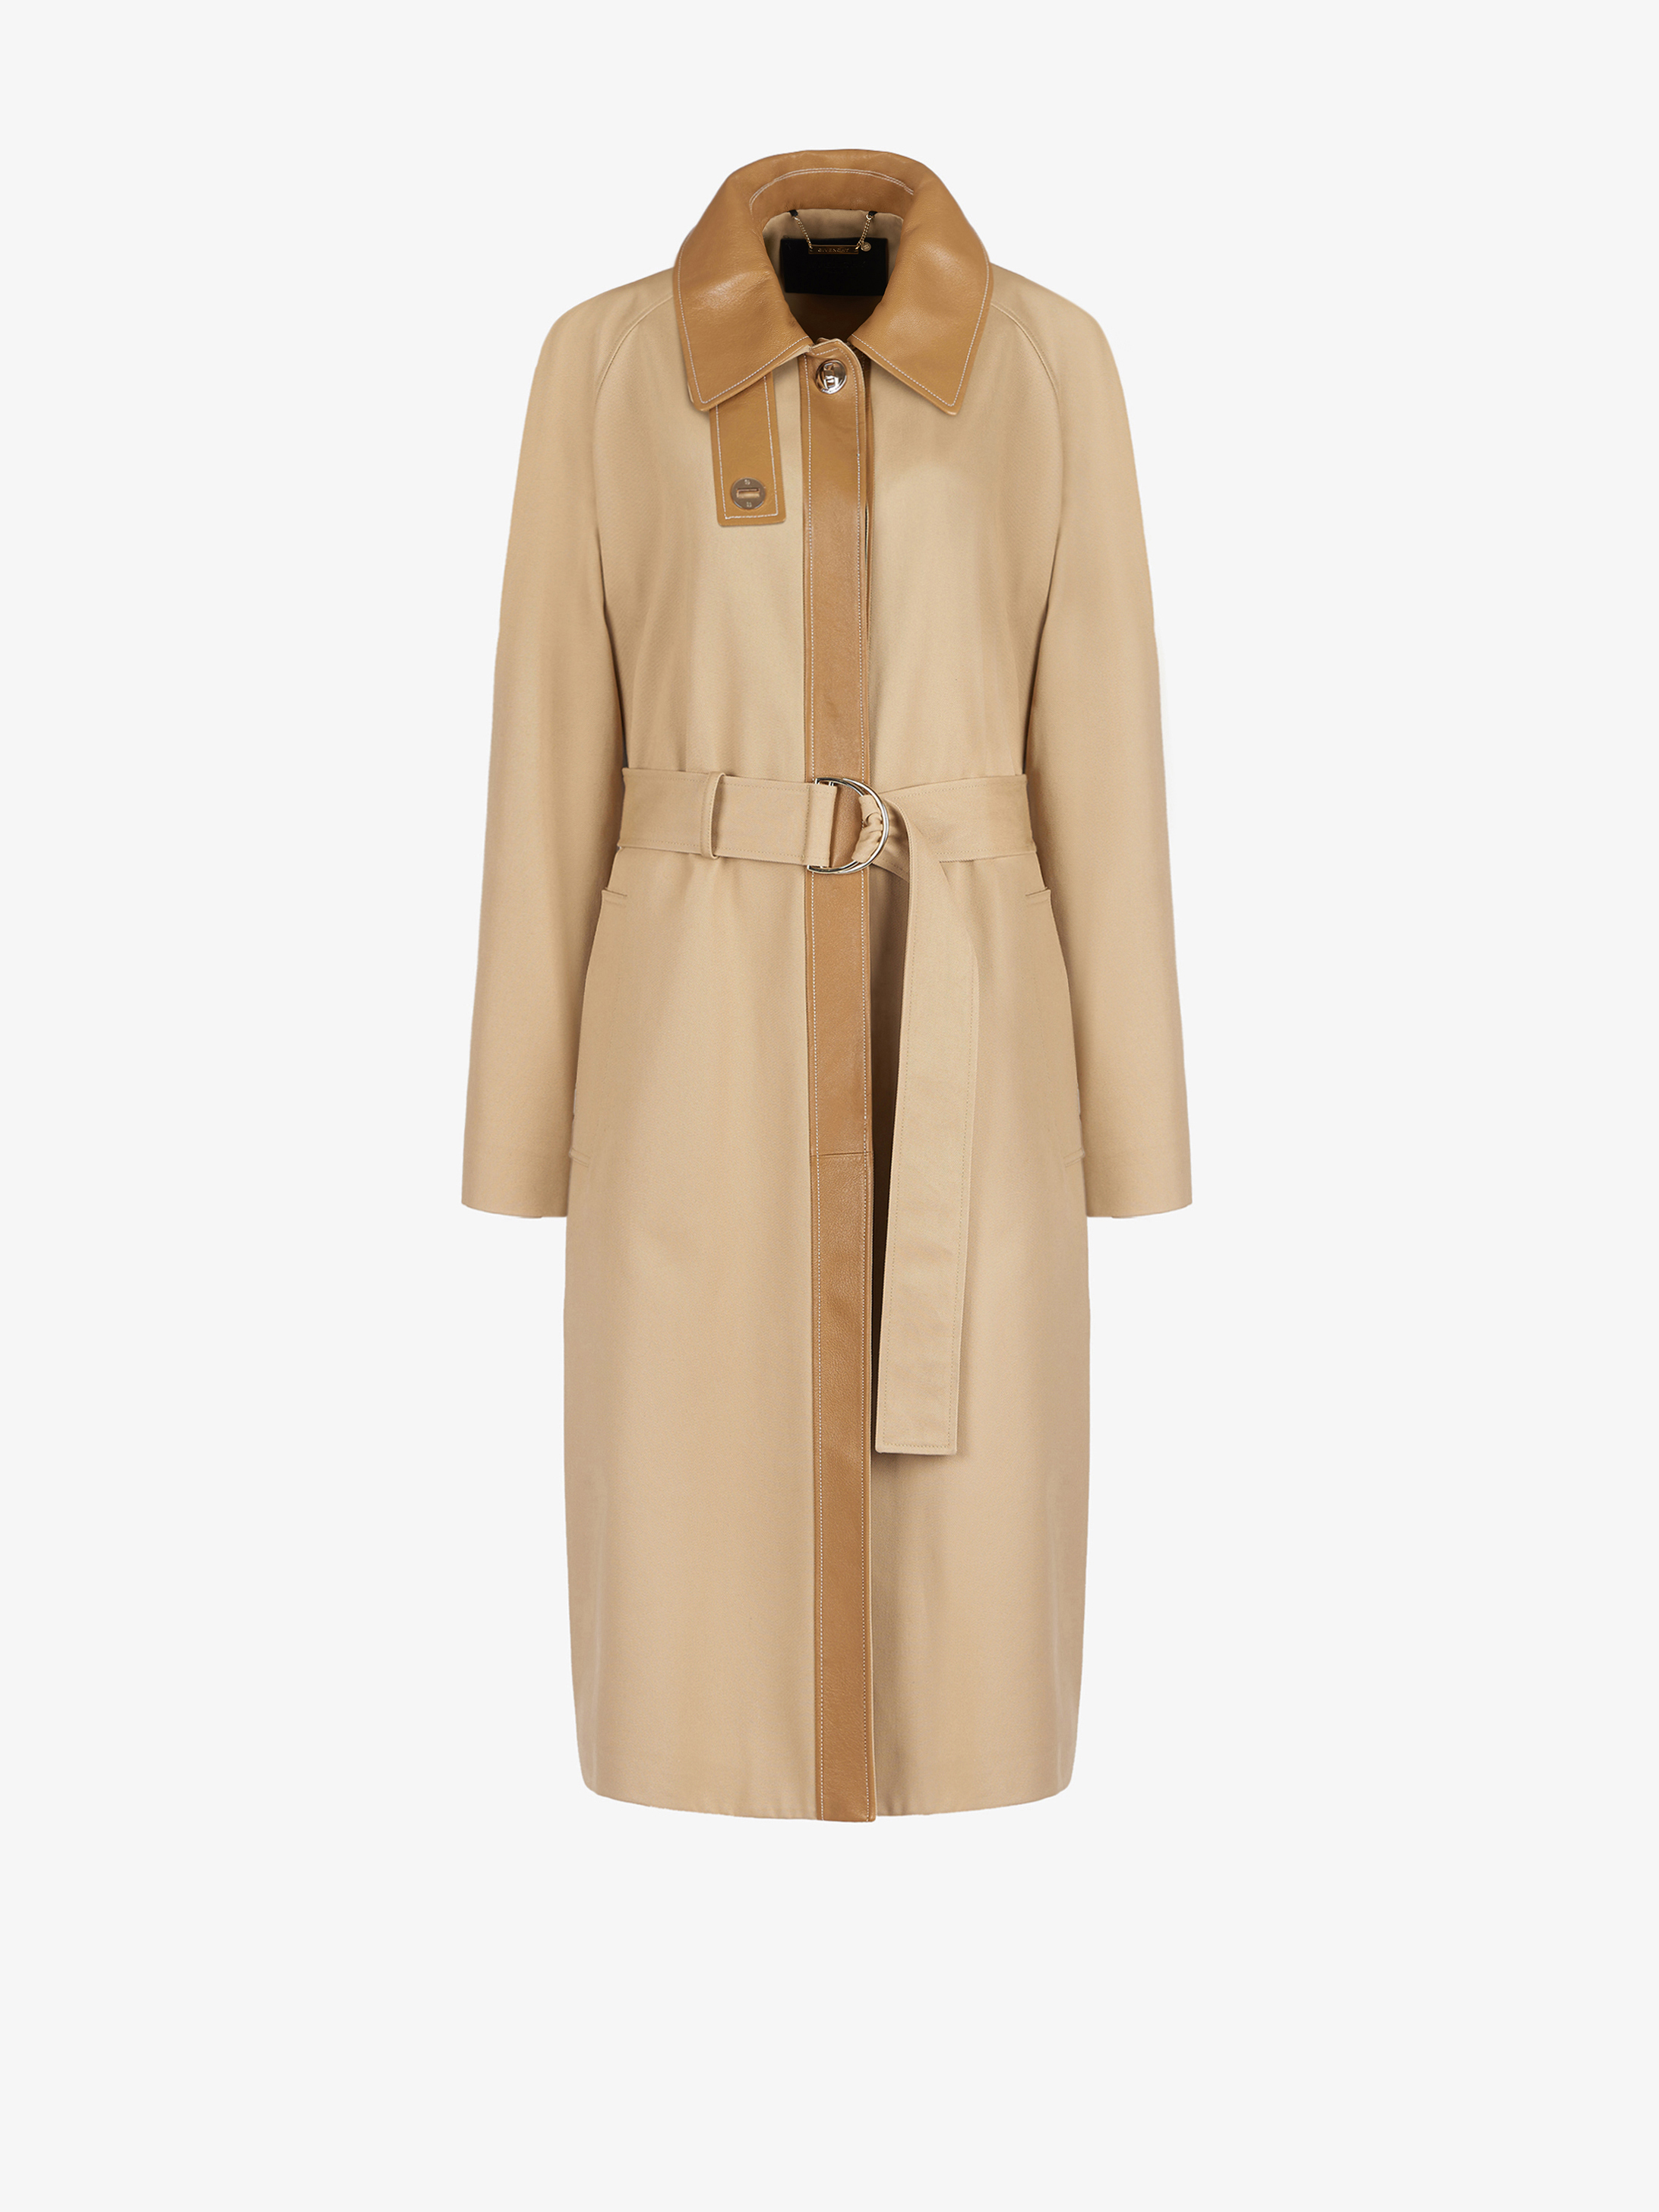 Long masculine trench coat in cotton with leather details